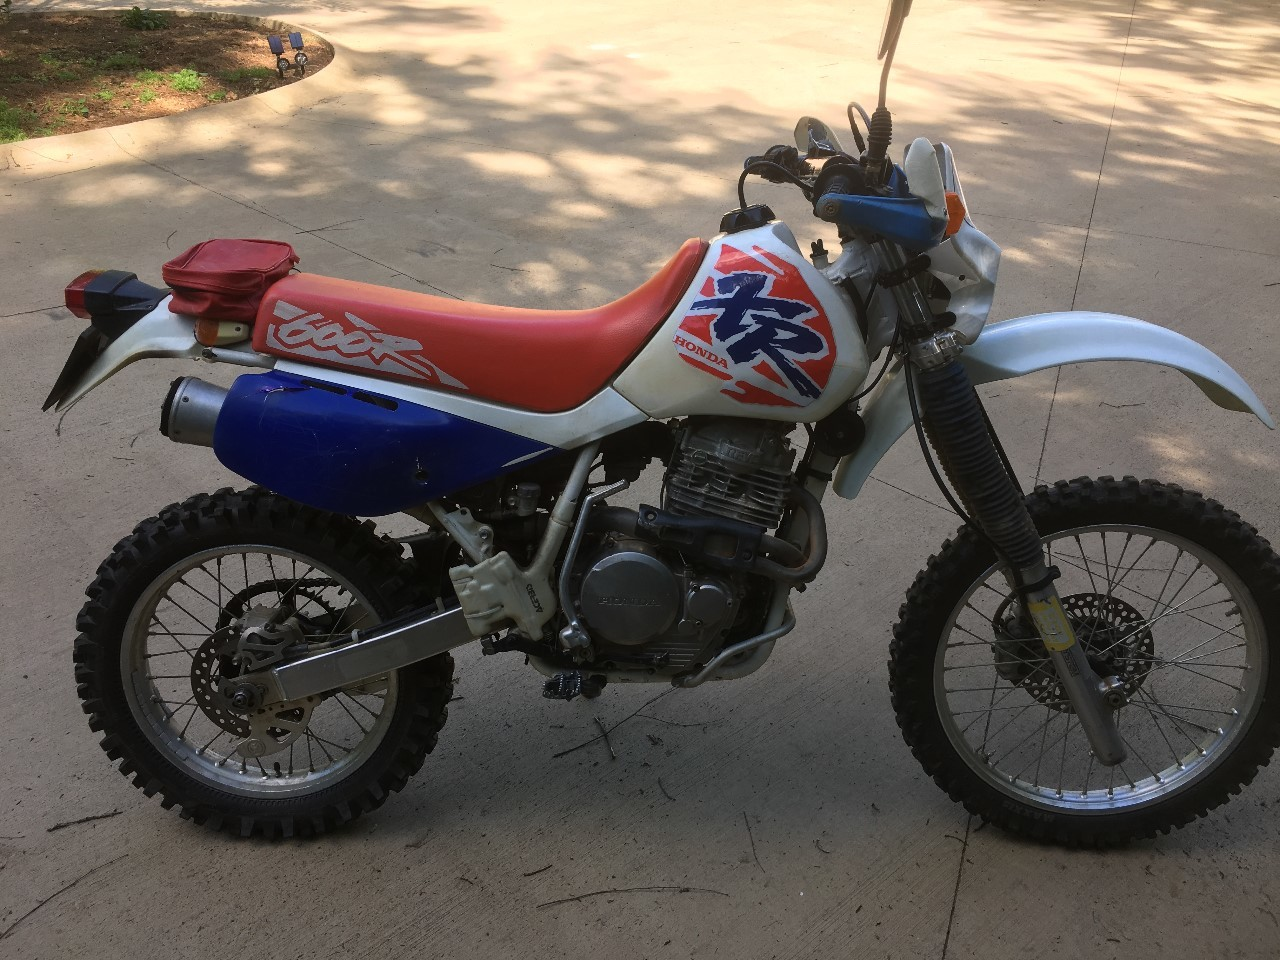 Xr 200 for sale honda dirt bike motorcycles cycle trader